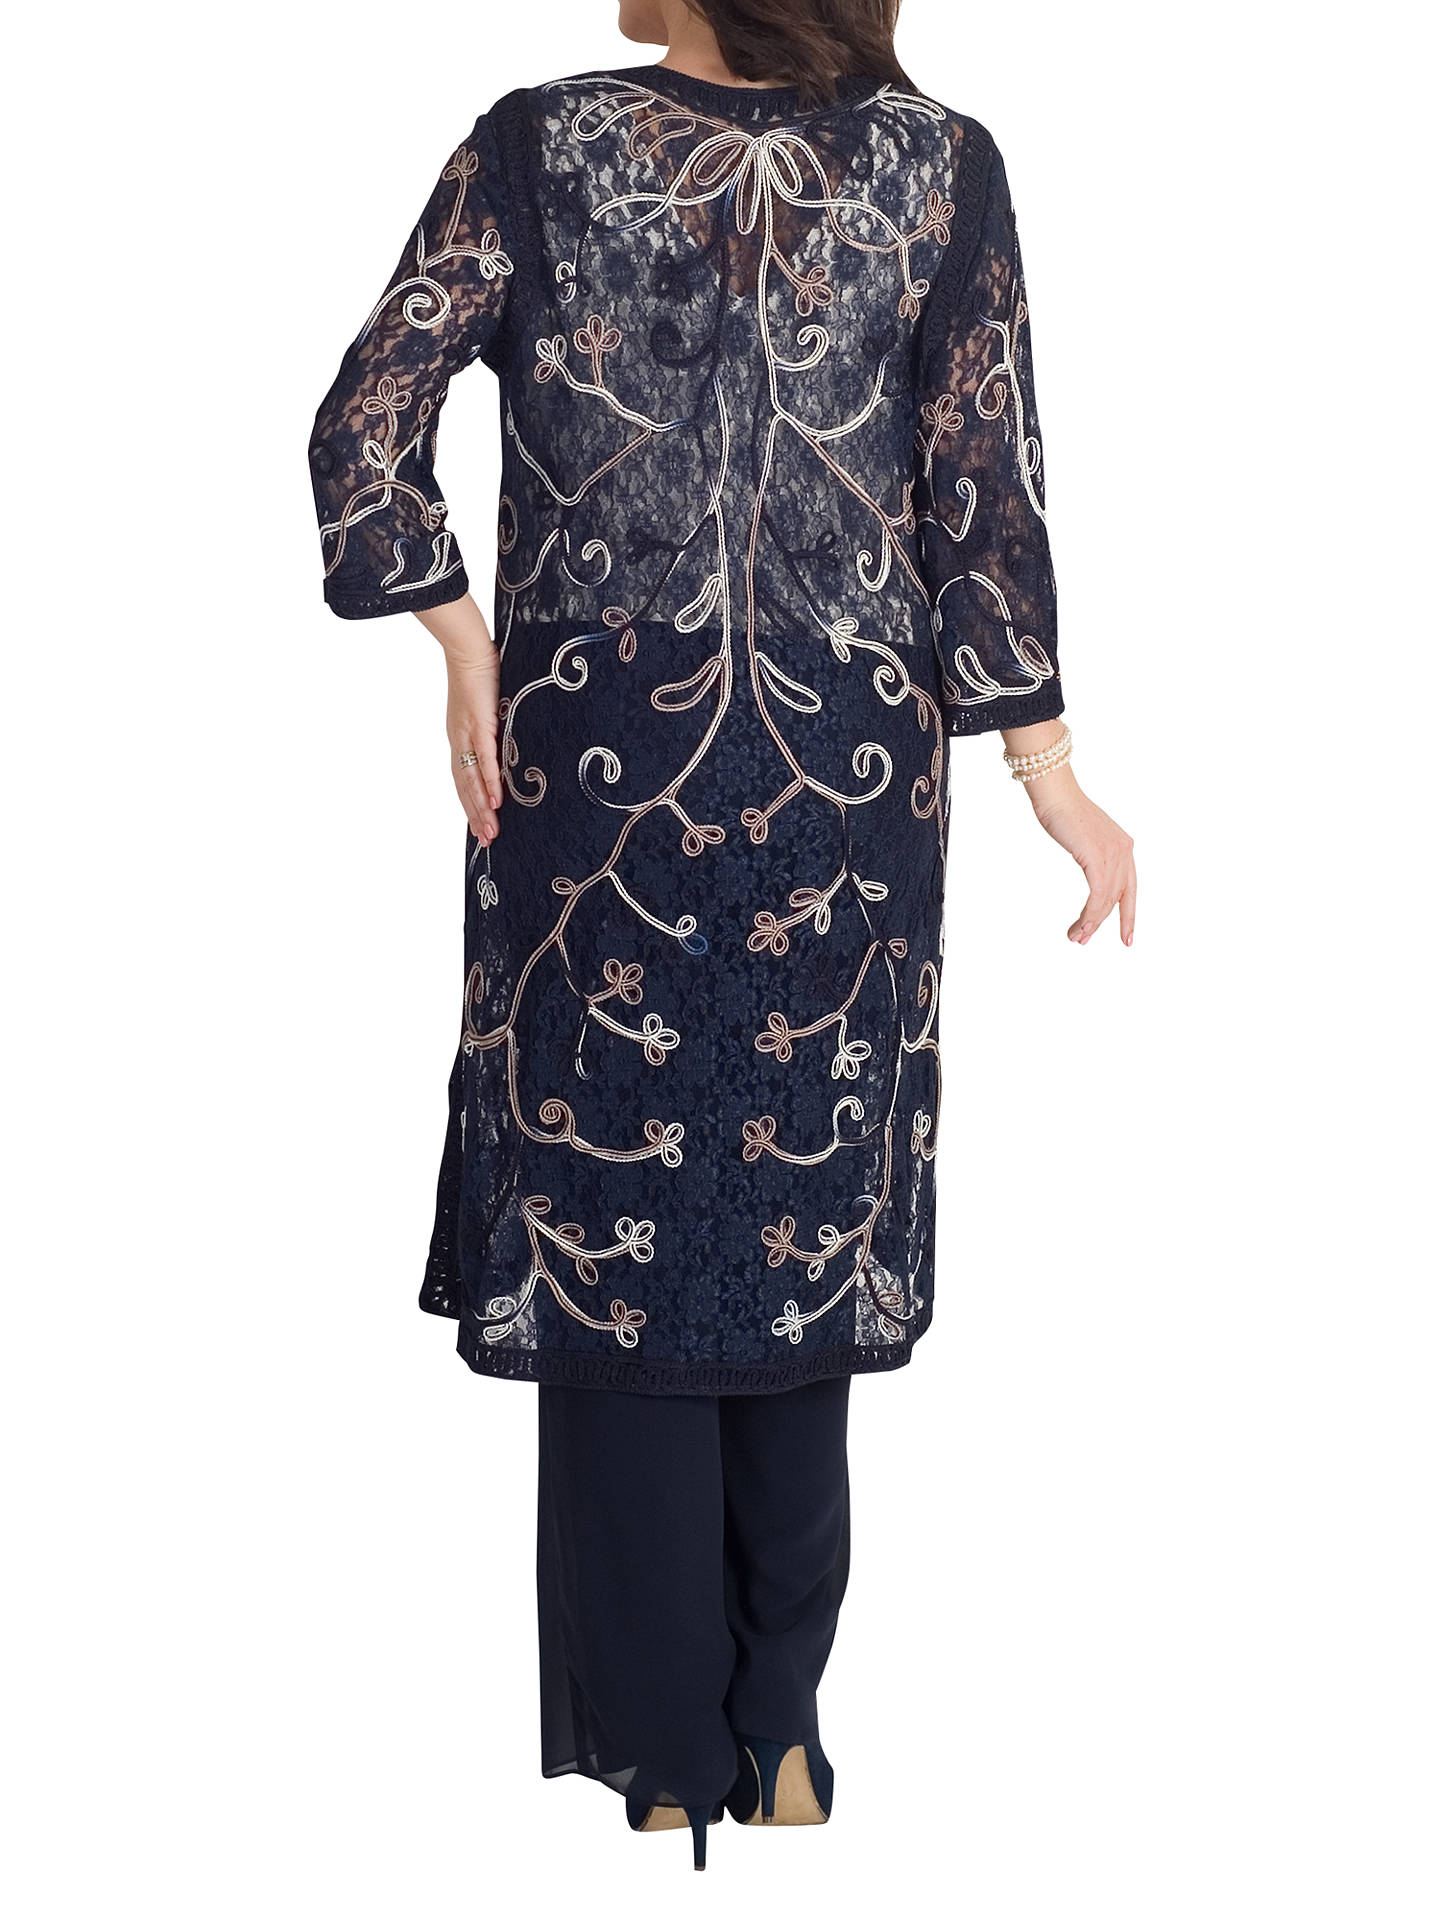 BuyChesca Cornelli Embroidered Lace Coat, Navy, 12-14 Online at johnlewis.com